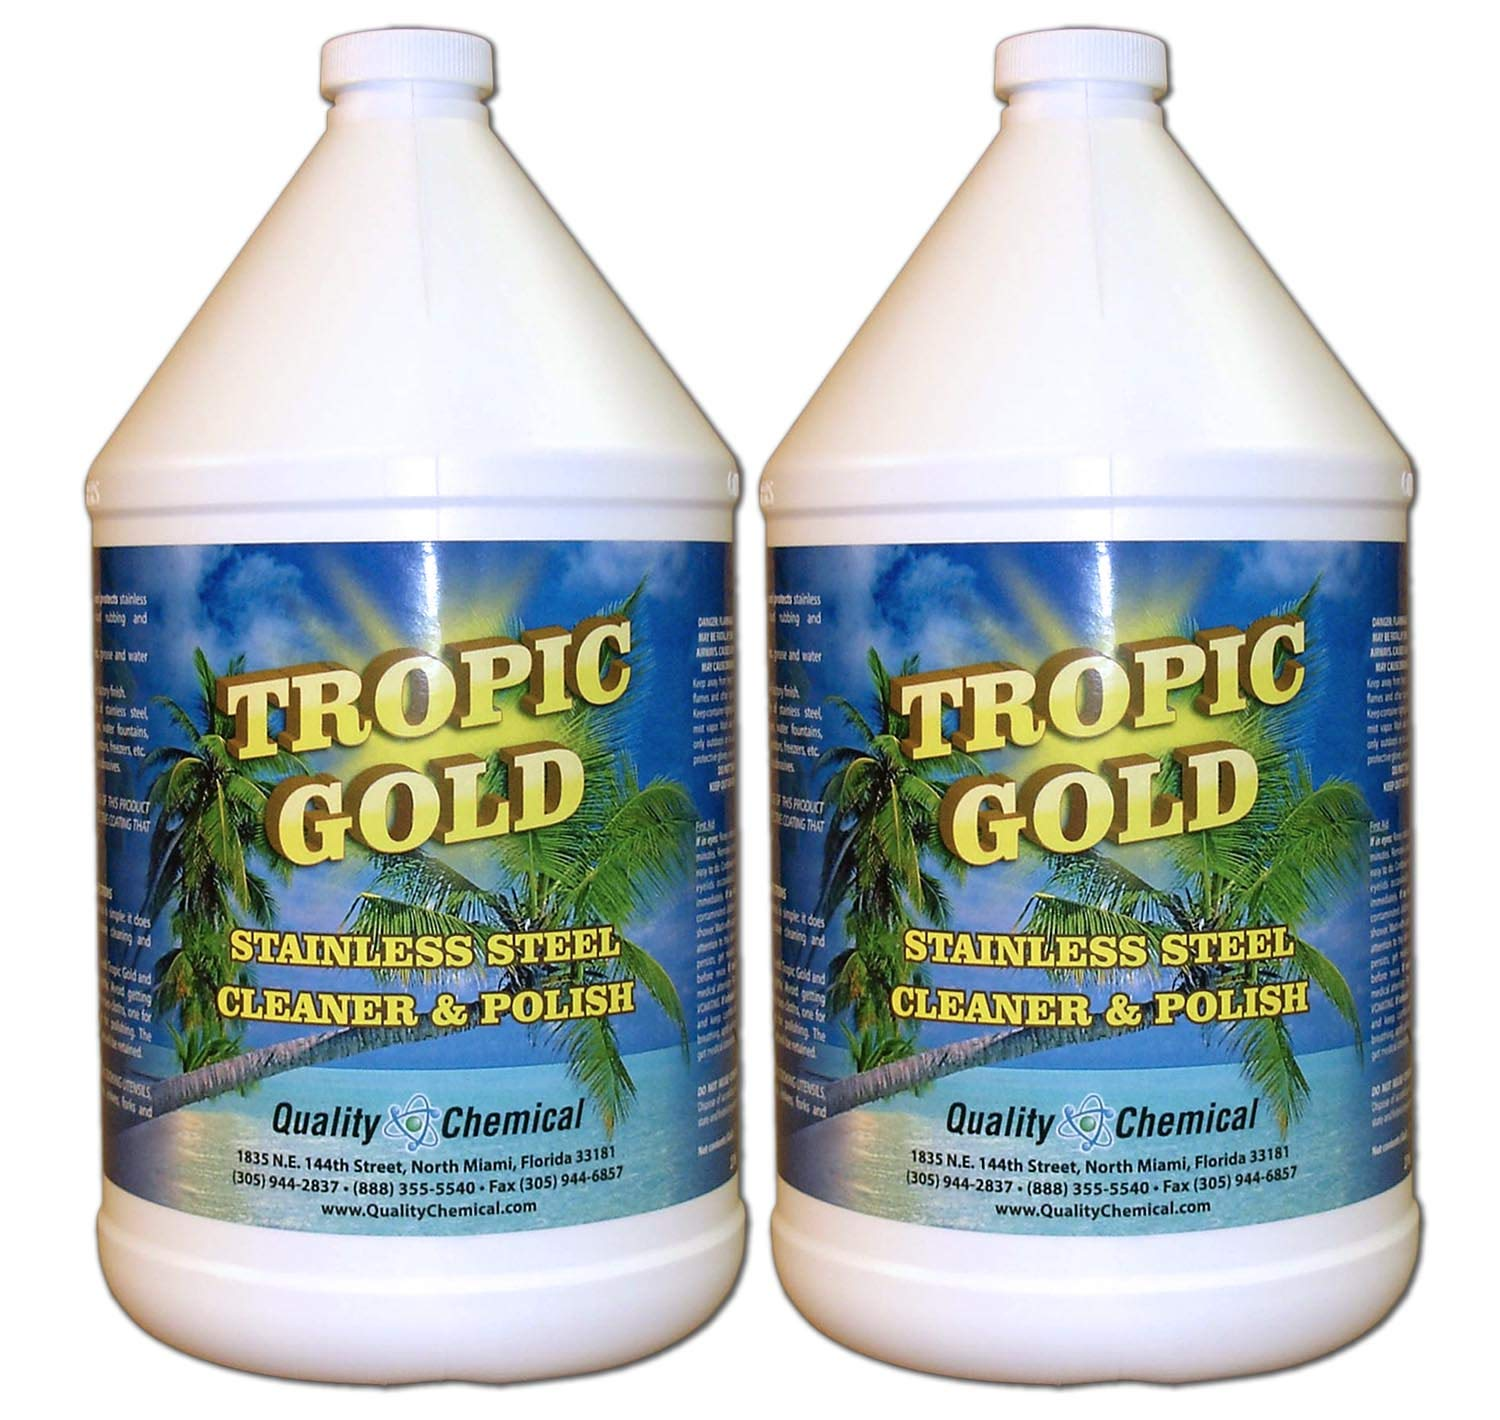 Tropic Gold Stainless Steel Polish-2 gallon case